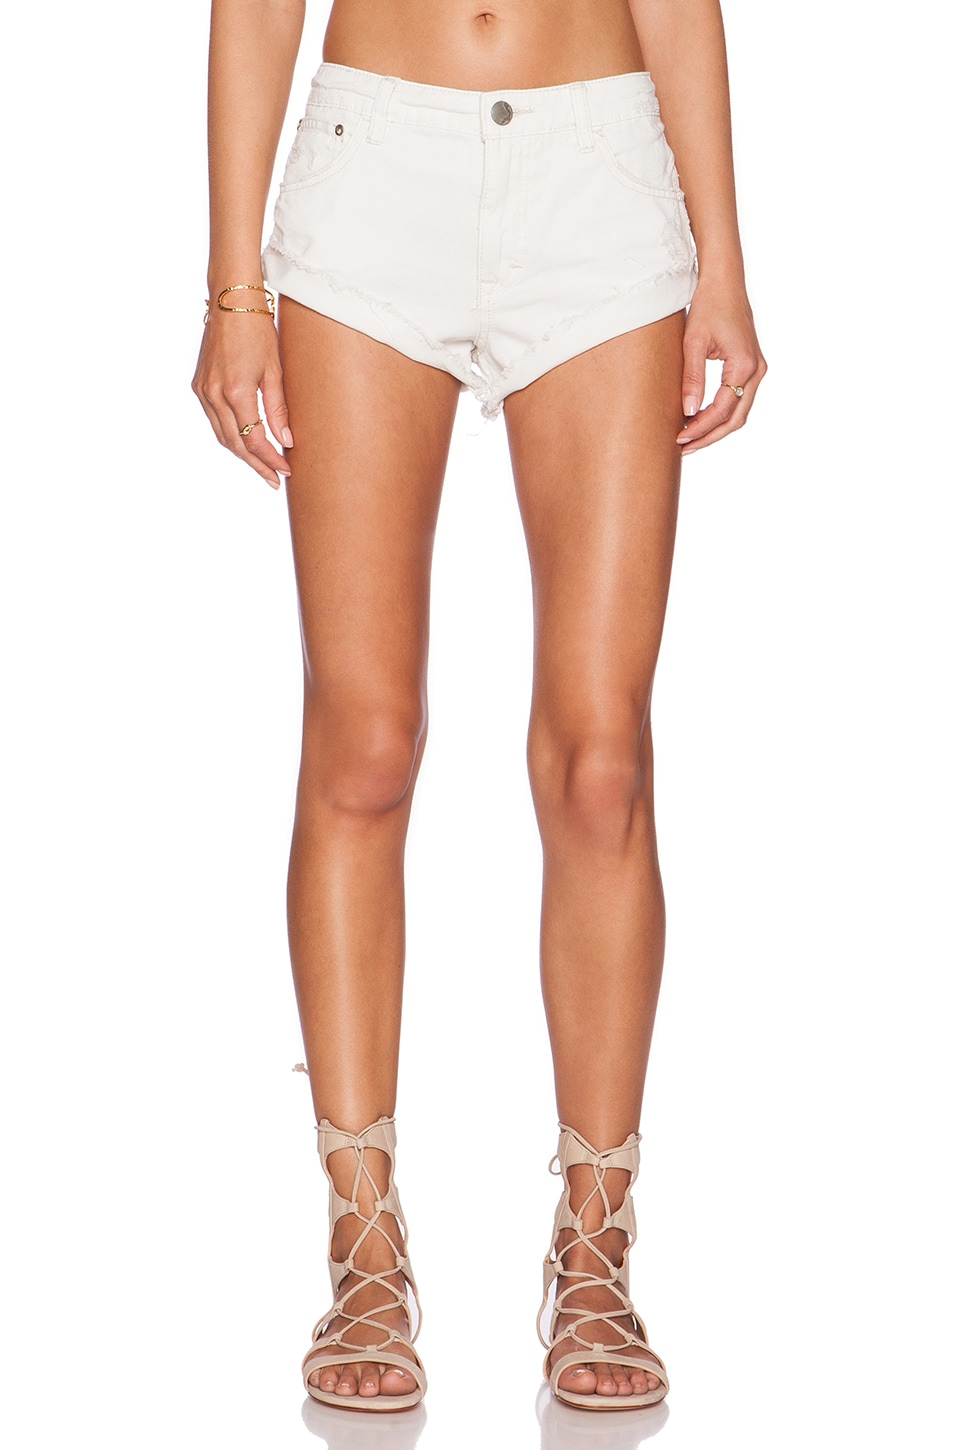 Free People Irreplaceable Cut Off Short in Polar White